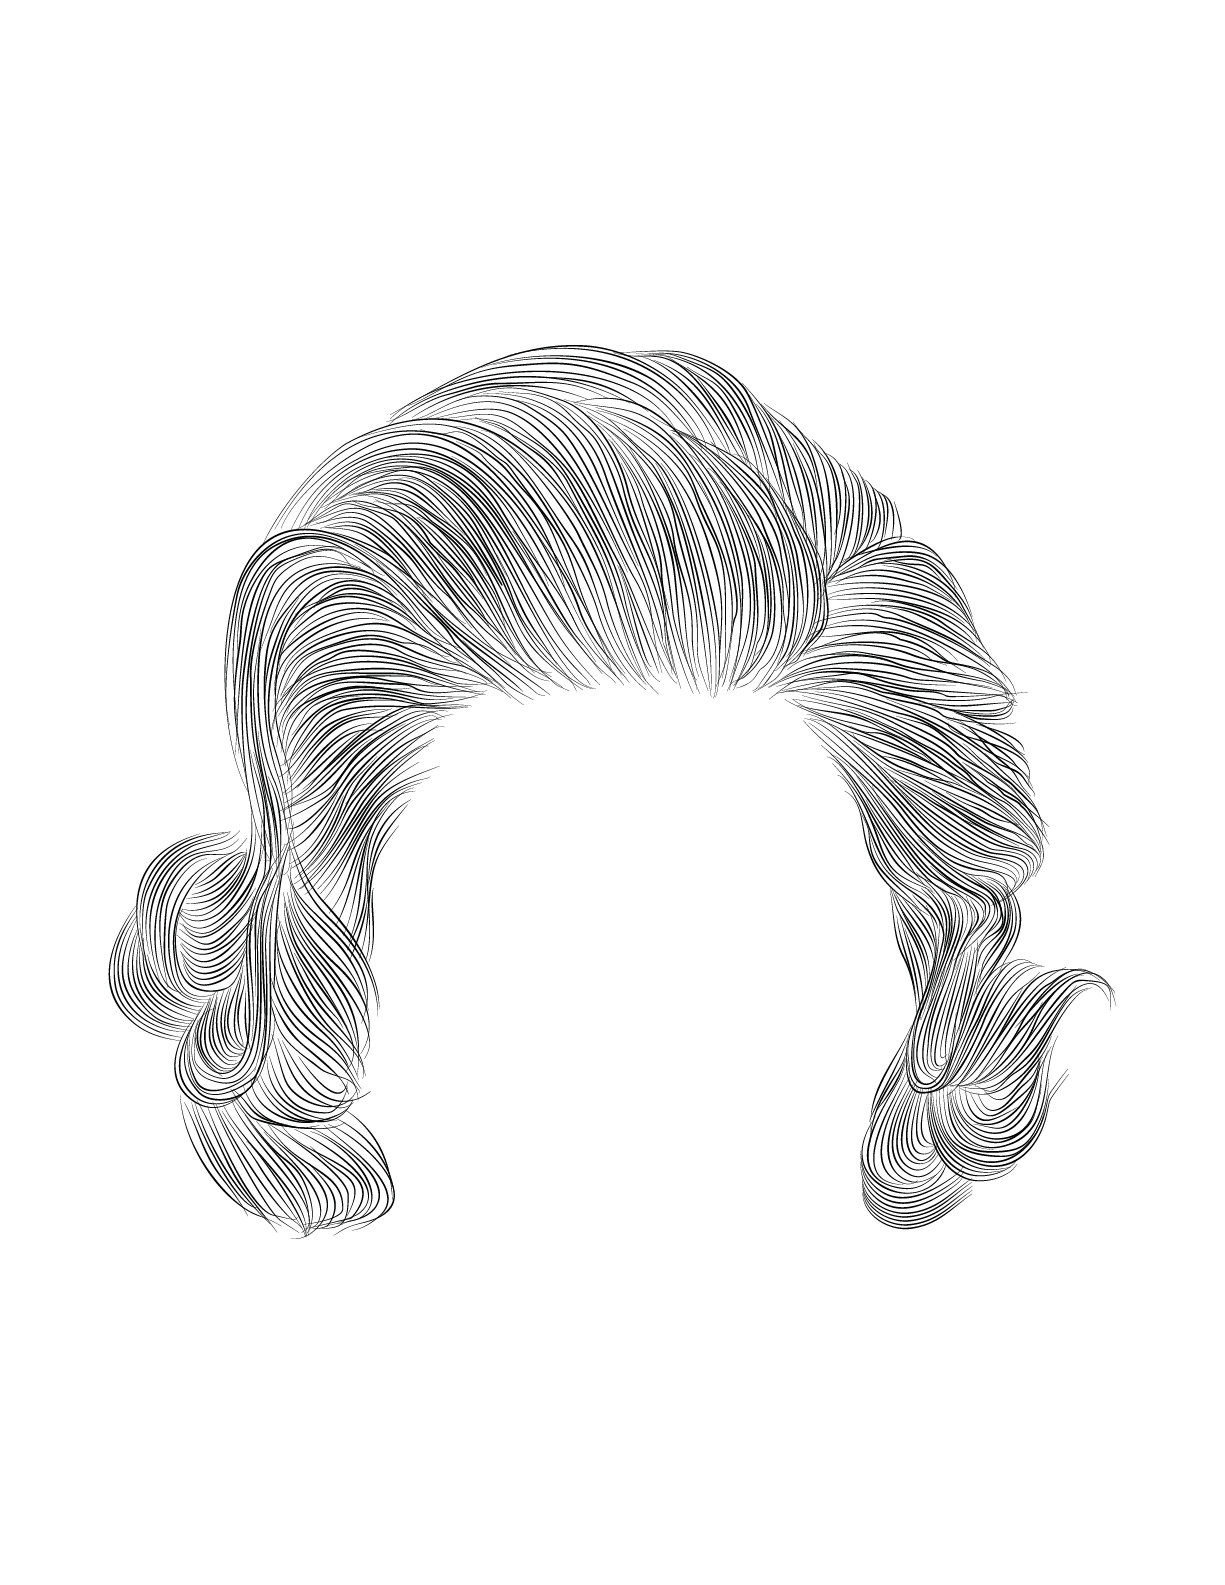 Woman Curly Hair Design Drawing